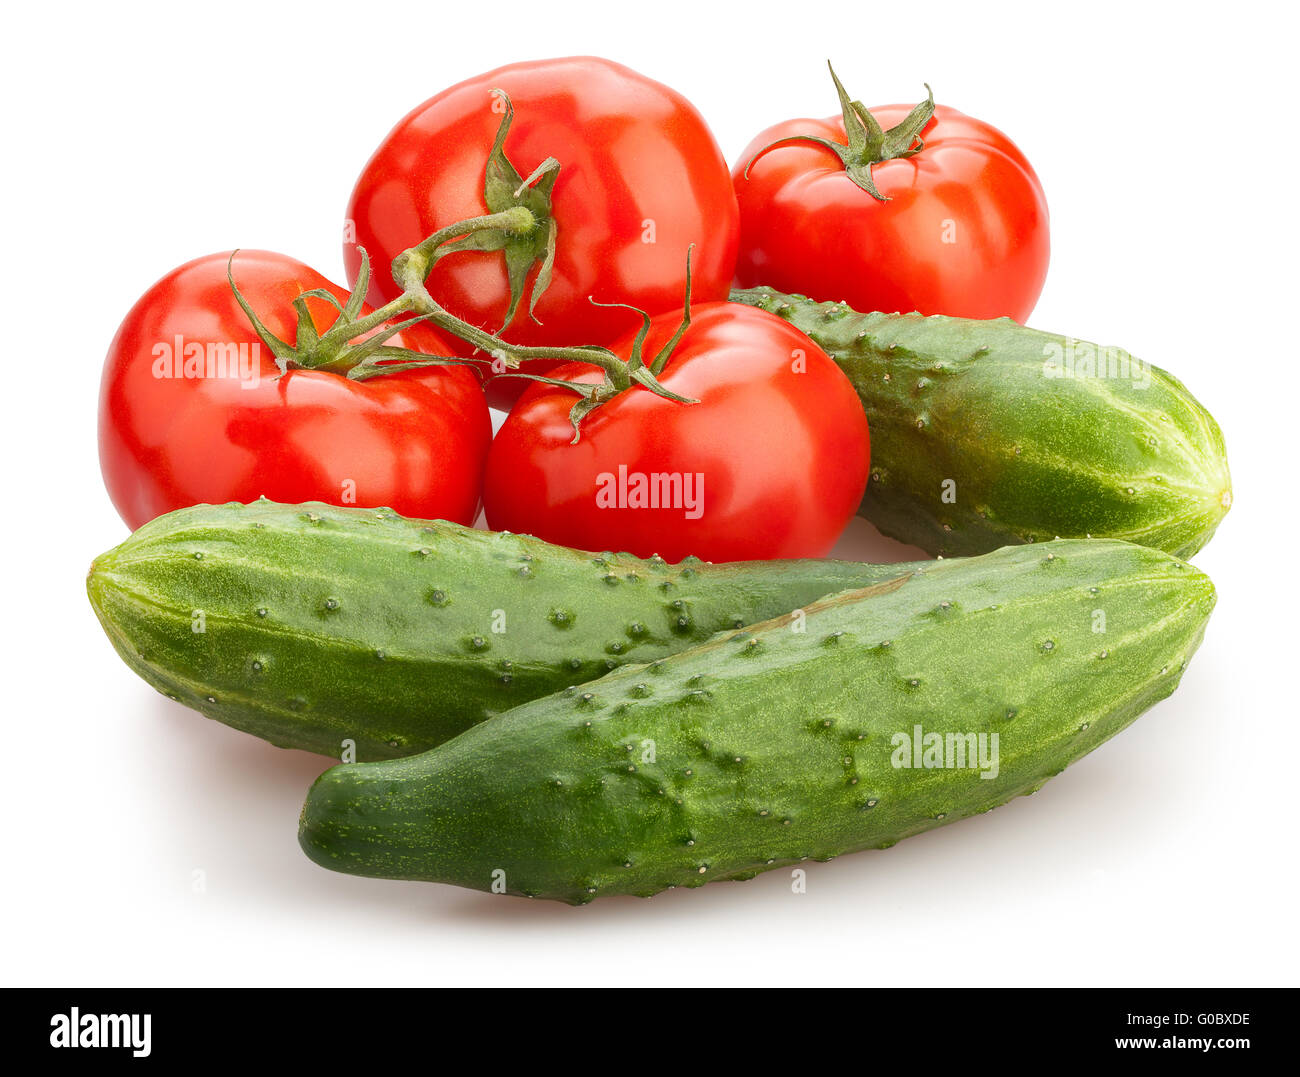 red tomatoes cucumber mix isolated - Stock Image